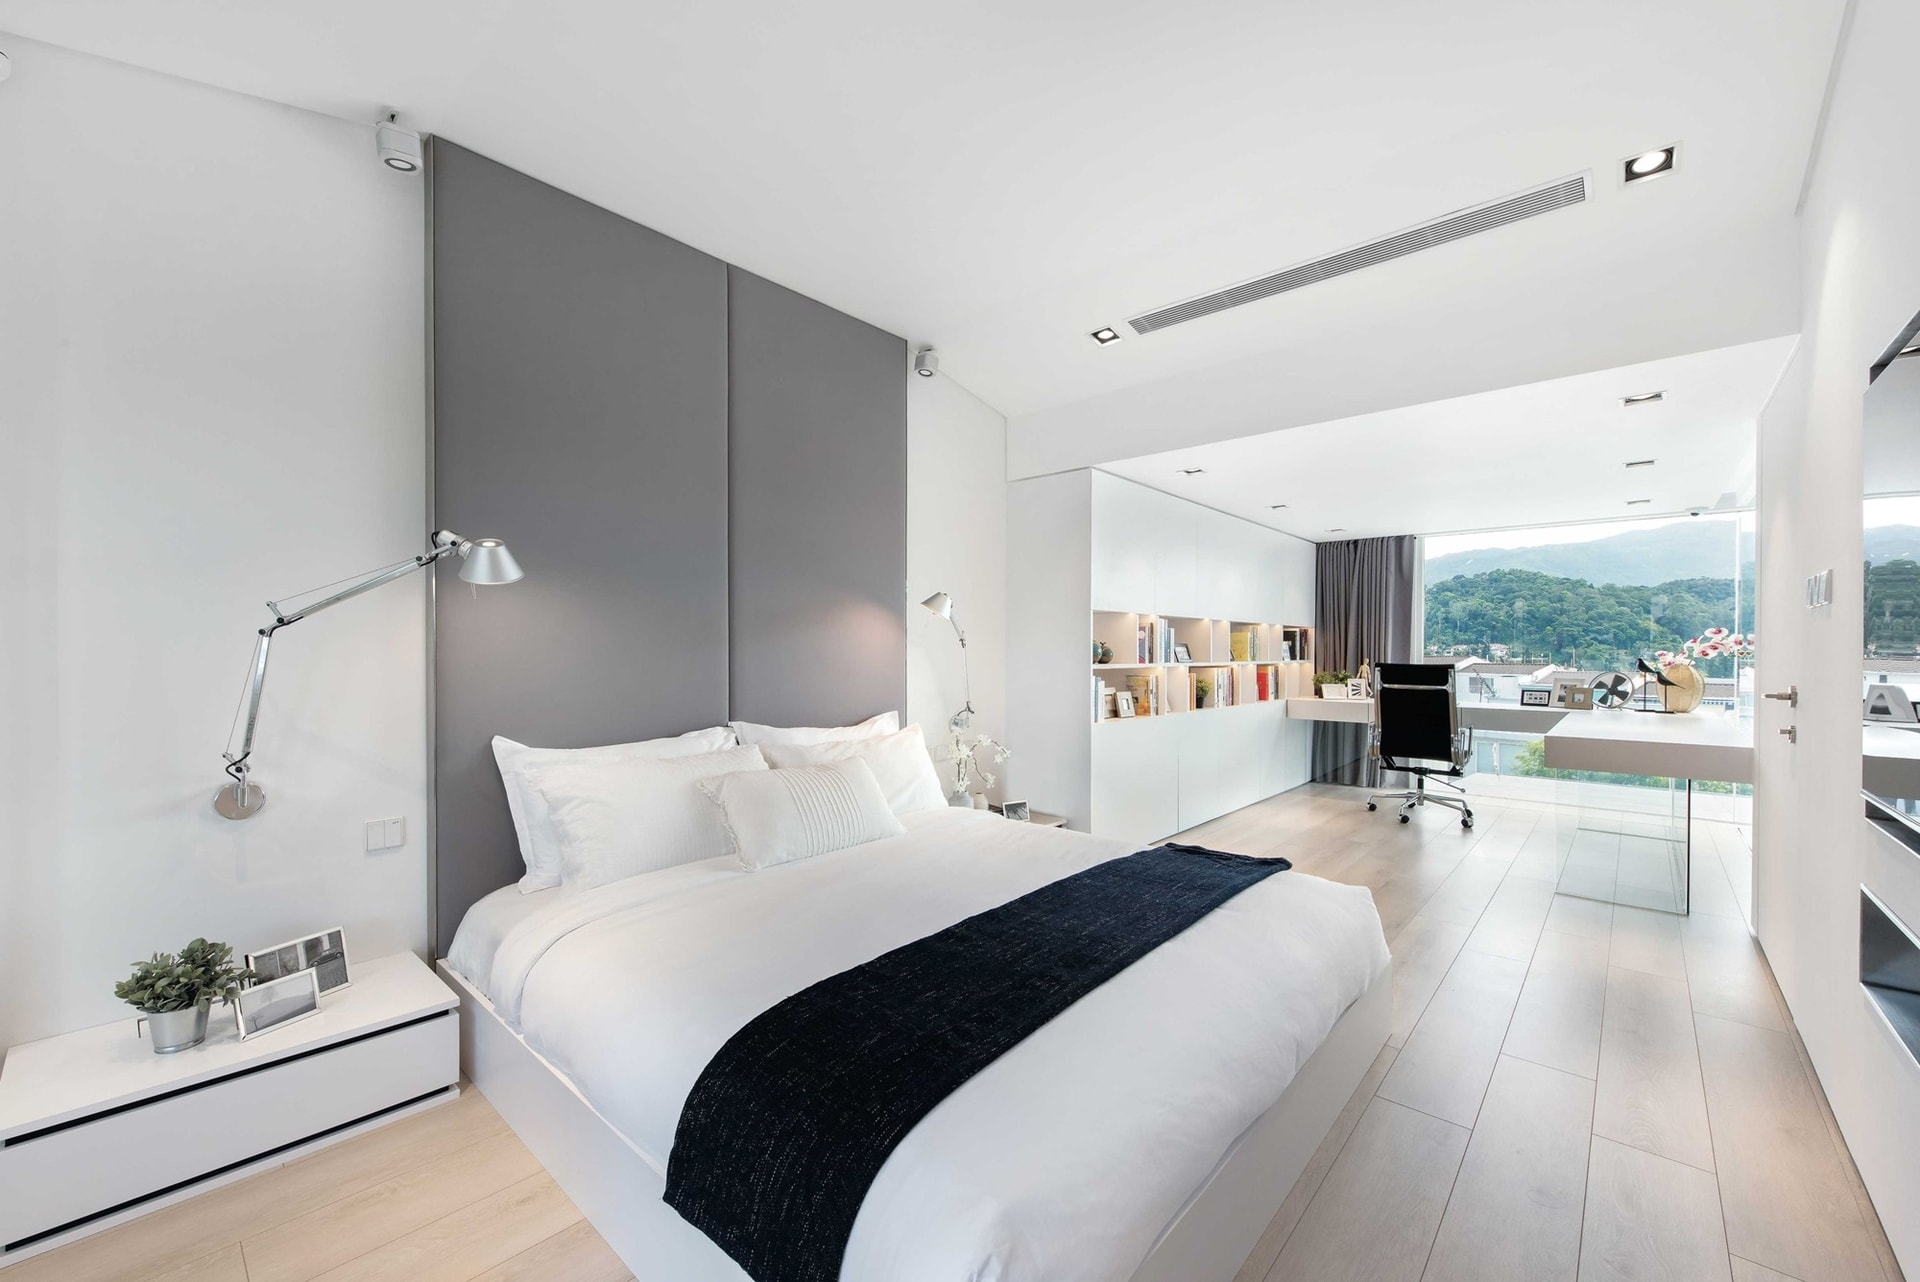 Modern Minimalist House Design with an Admirable ... on Minimalist Bedroom Design  id=14177